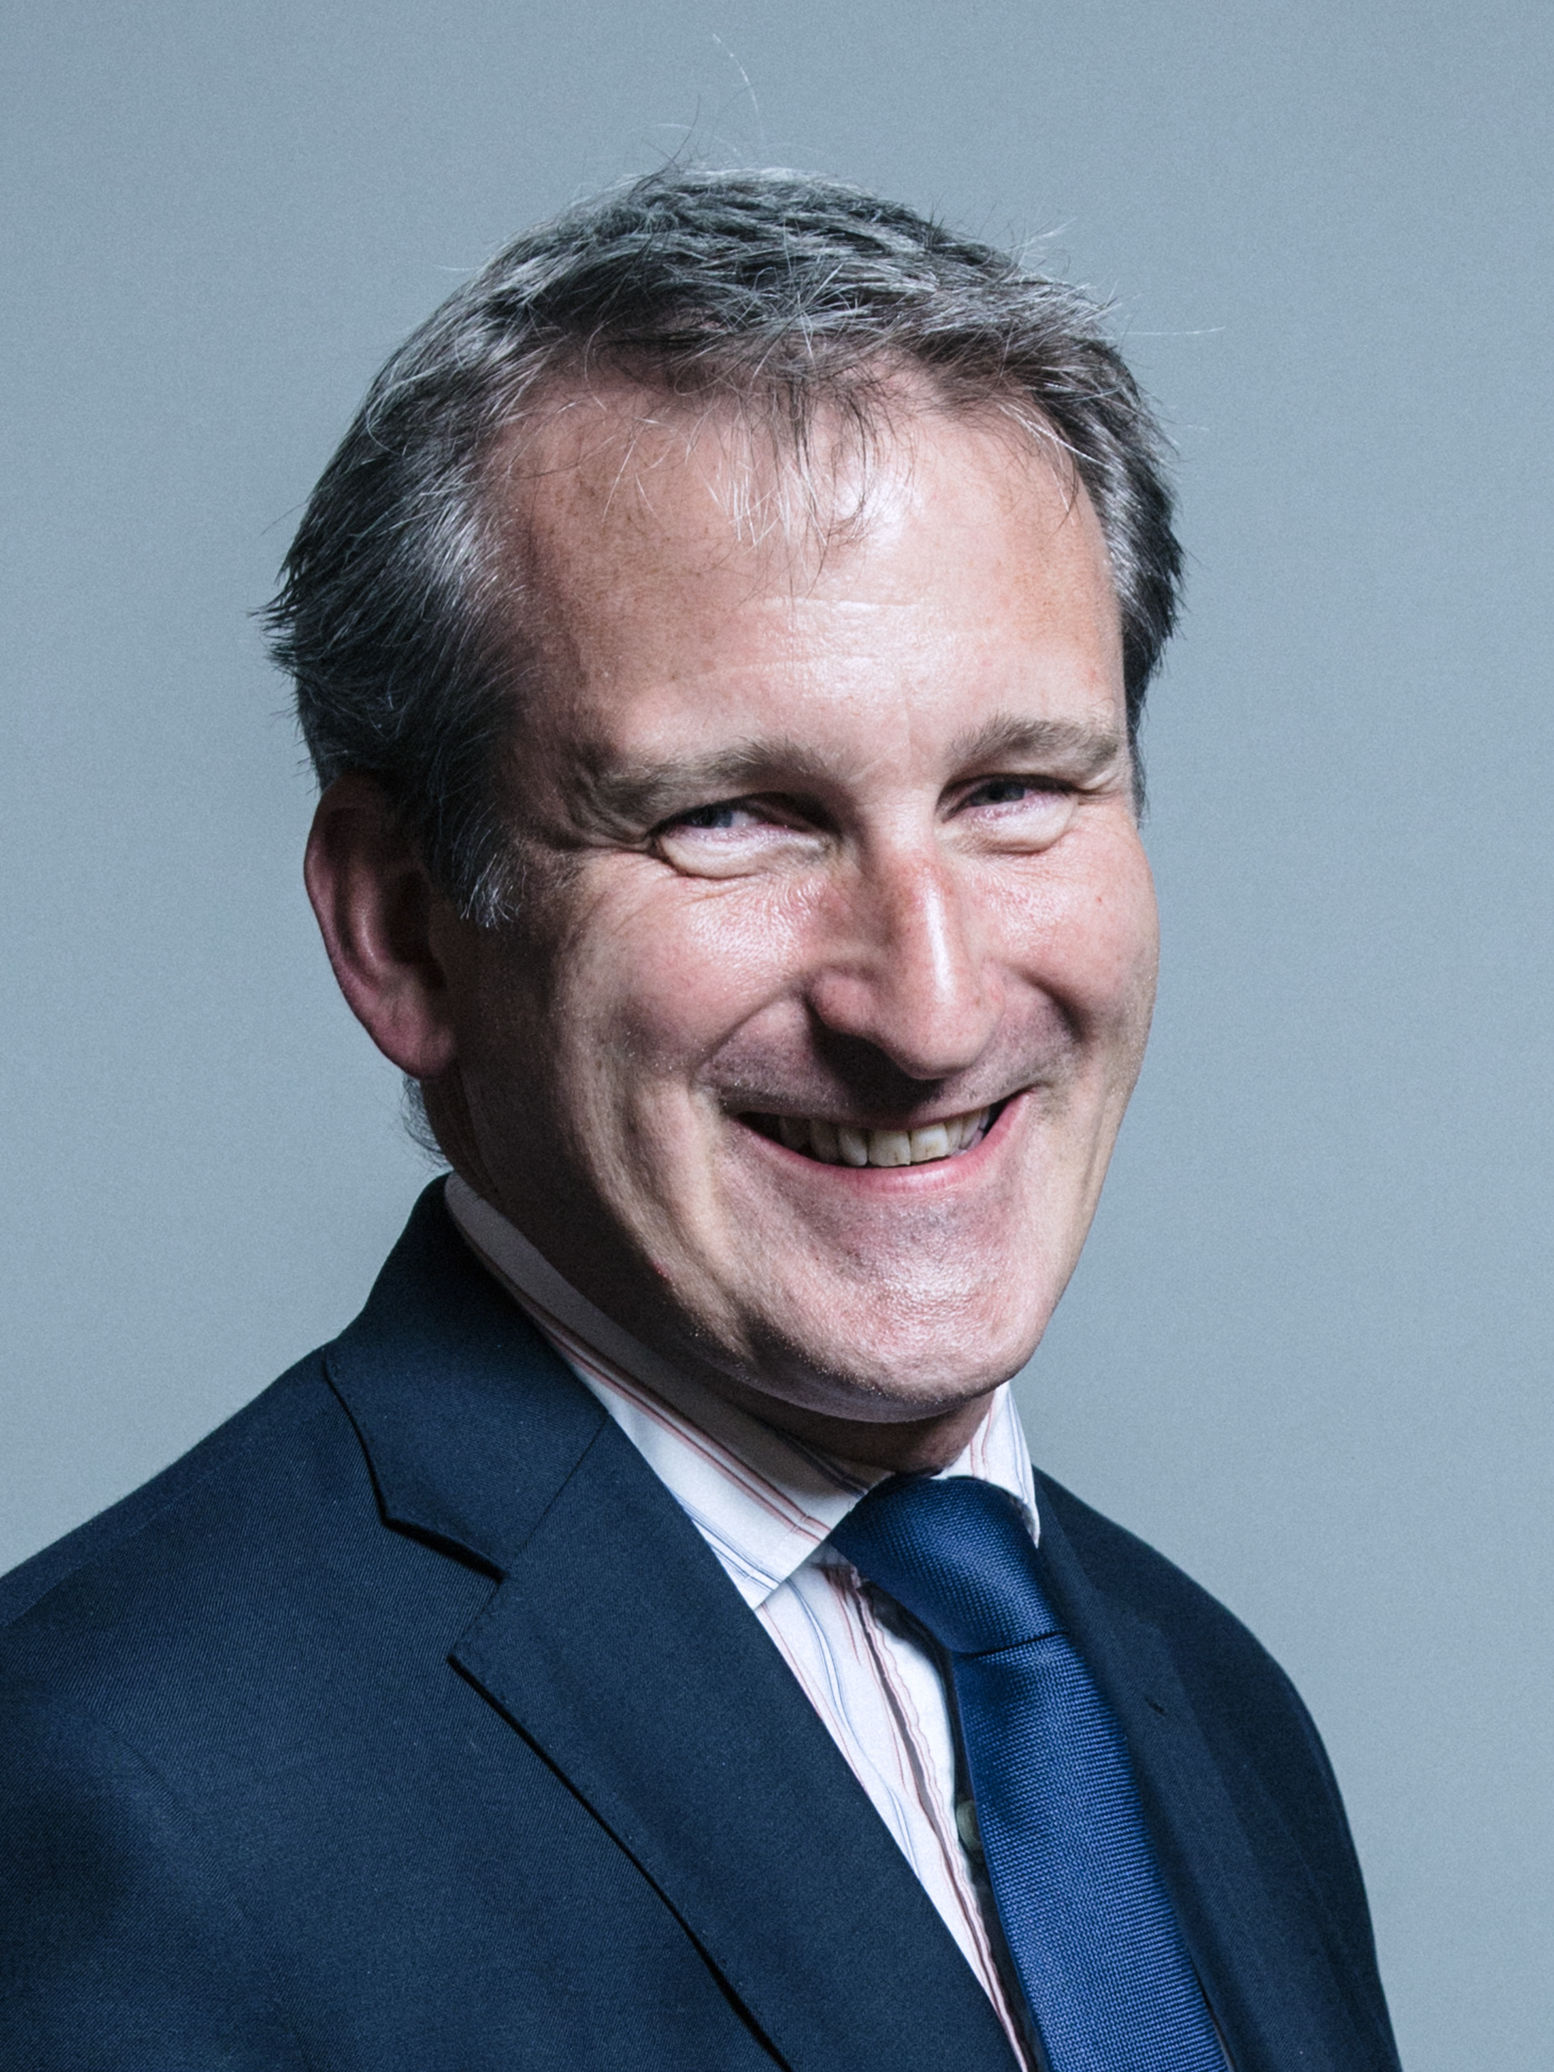 Official portrait of Damian Hinds crop 2jpg